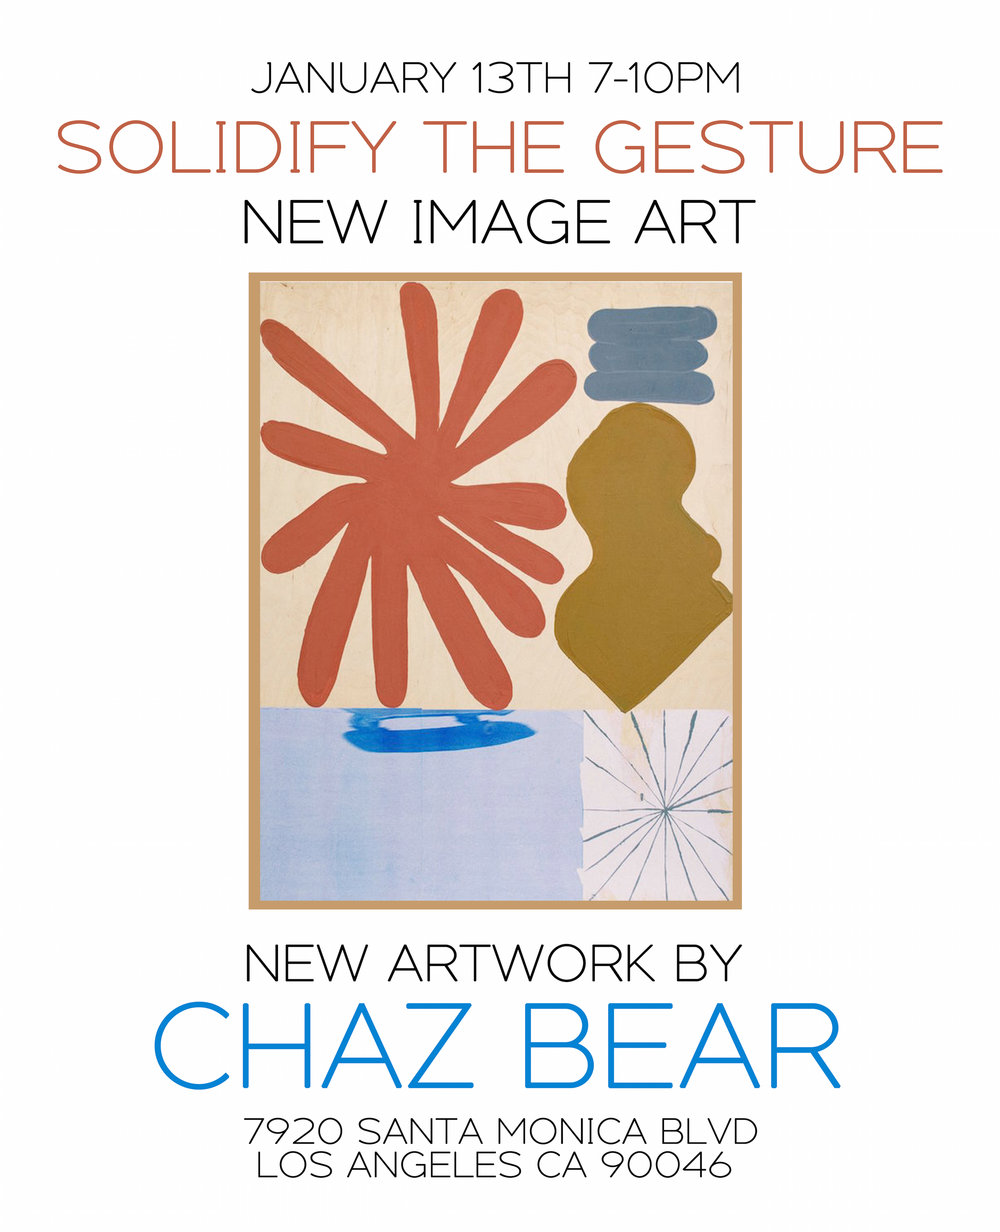 CHAZ BEAR - SOLIDIFY THE GESTURE